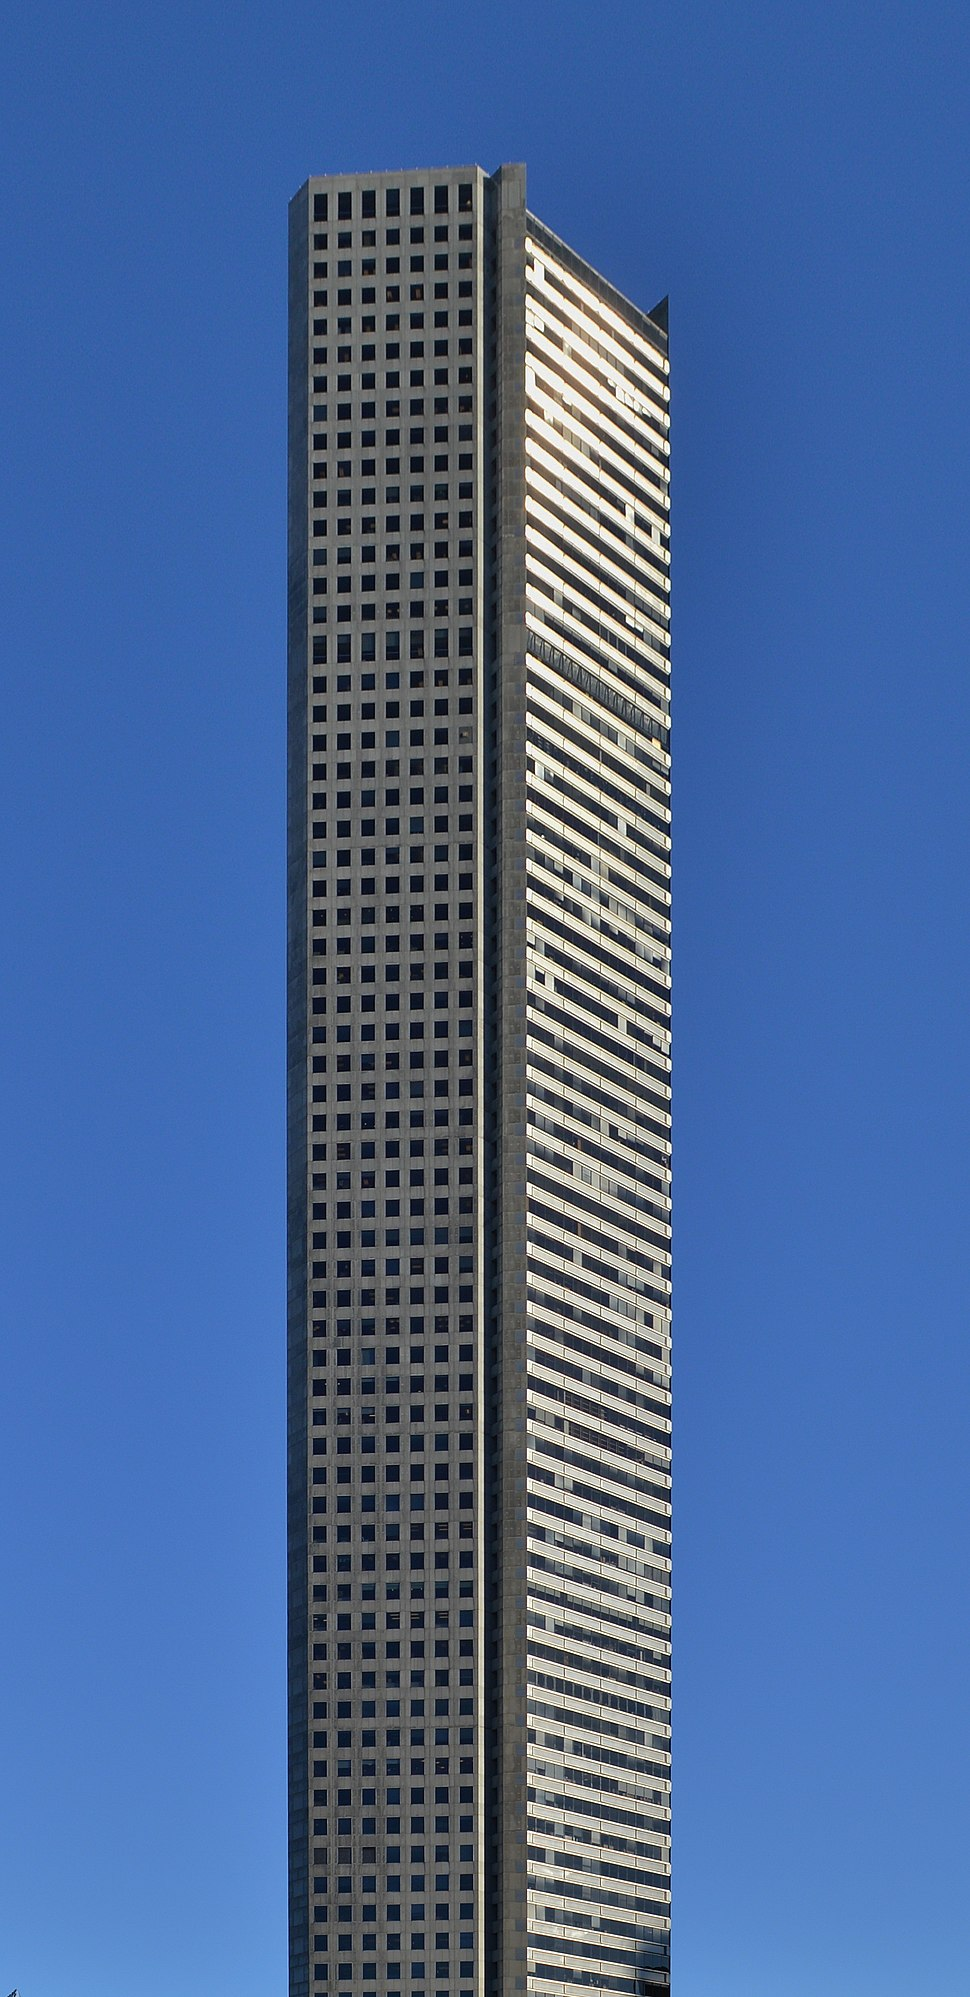 JP Morgan Chase Tower in Houston - Dec 2013